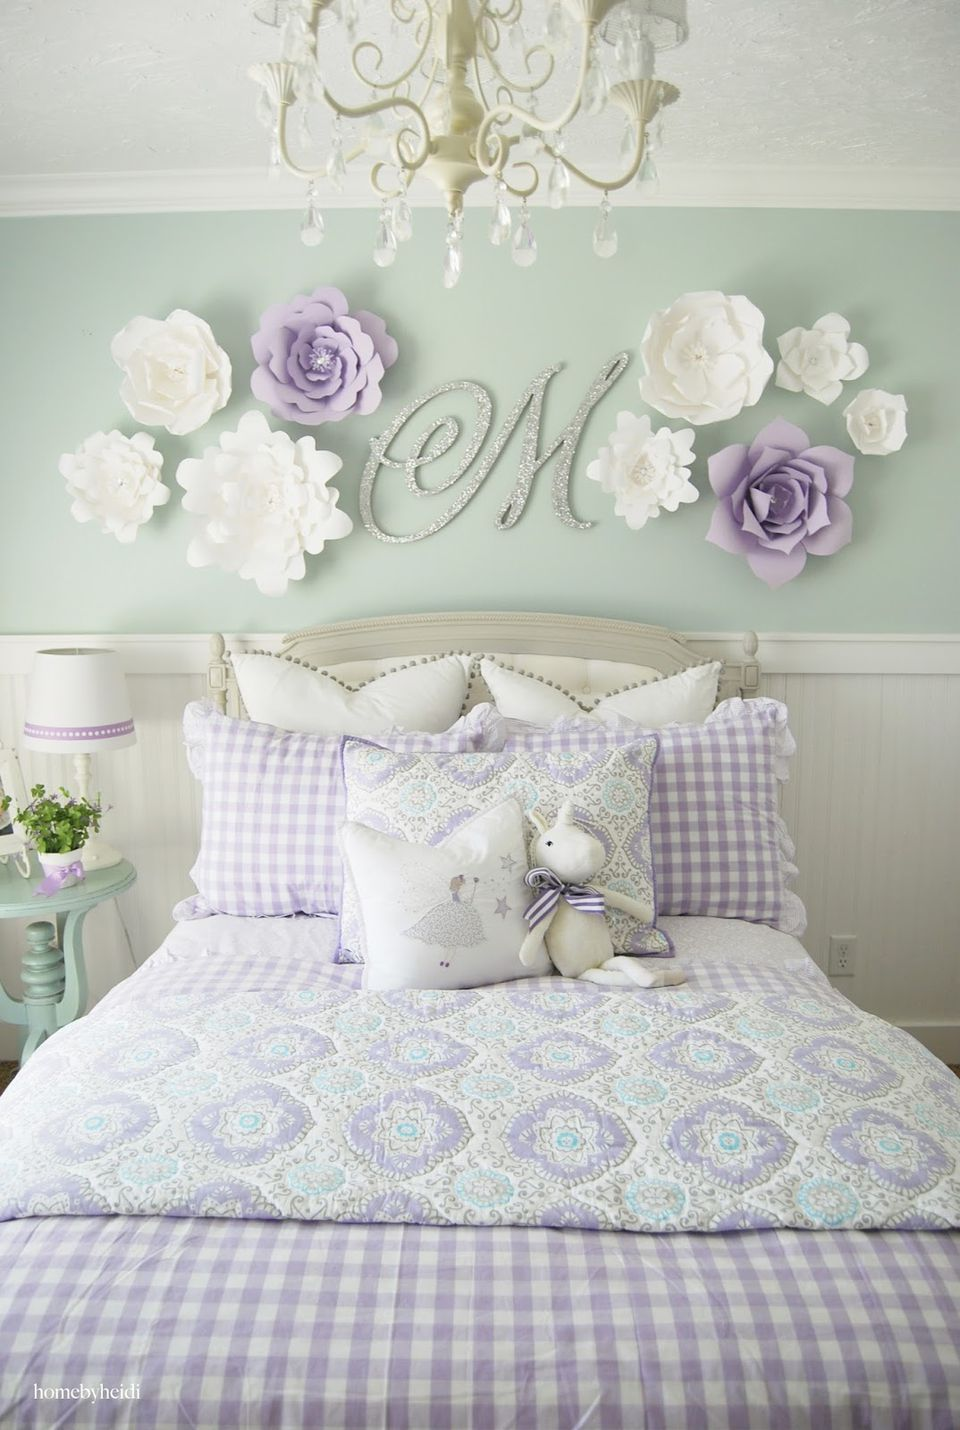 24 Wall Decor Ideas for Girls' Rooms on Girls Room Decorations  id=60109